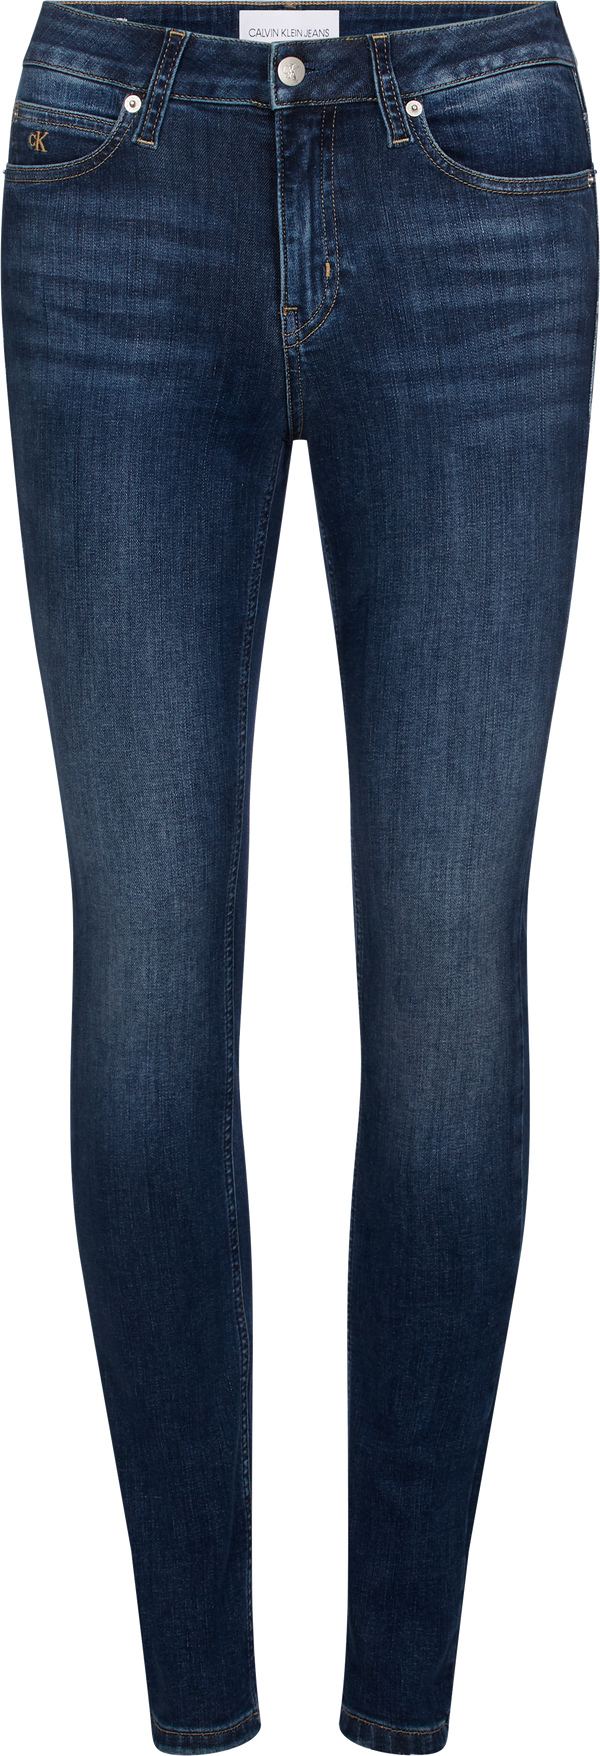 NOOS CKJ 011 MID RISE SKINNY (1A4 ZZ001 MID BLUE) - D.O Design Only